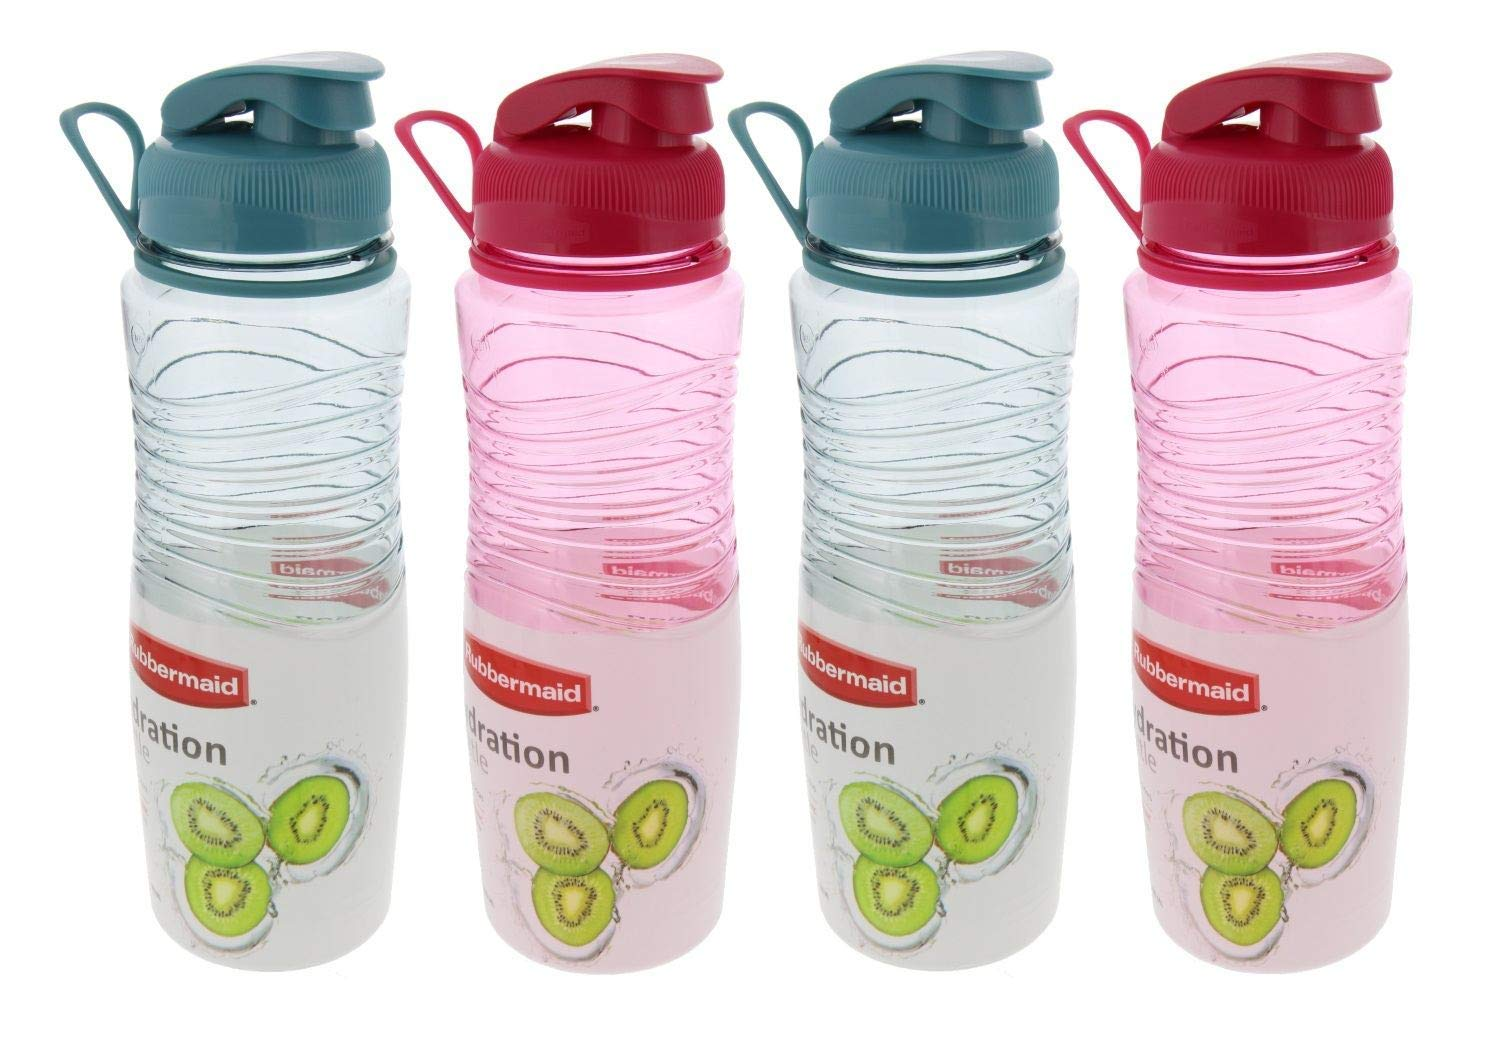 Rubbermaid Hydration Chug Bottles w/Flip-Top Lid-BPA Free, Odor & Stain Resistant-Great for On the Go-Finger Loop & Contoured for Easy Grip, 30oz, (2) Coastal Teal & (2) Magenta Fire (4 Pack)